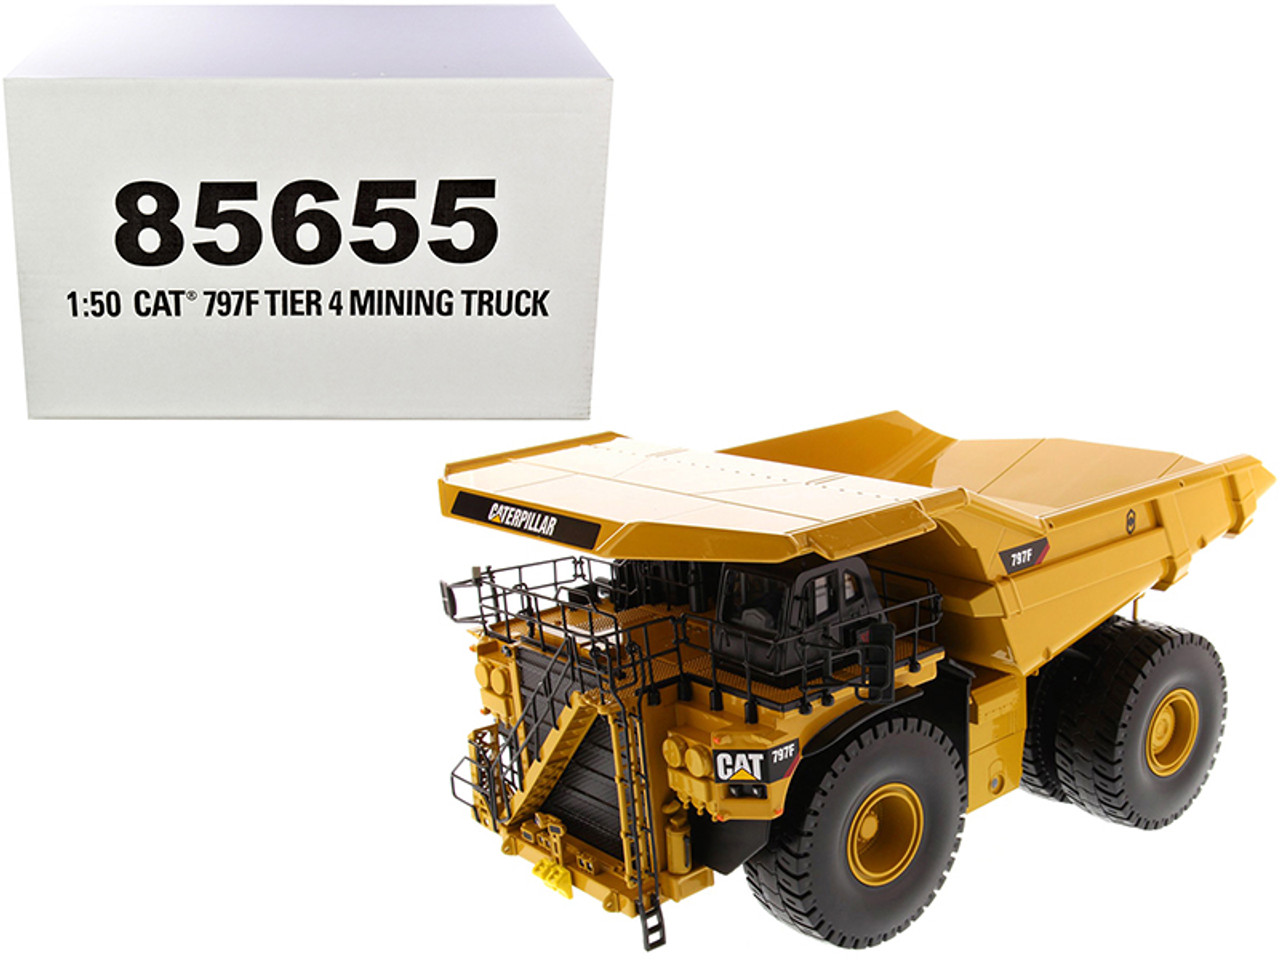 "CAT Caterpillar 797F 4 Tier Mining Truck ""High Line Series"" 1/50 Diecast Model by Diecast Masters"